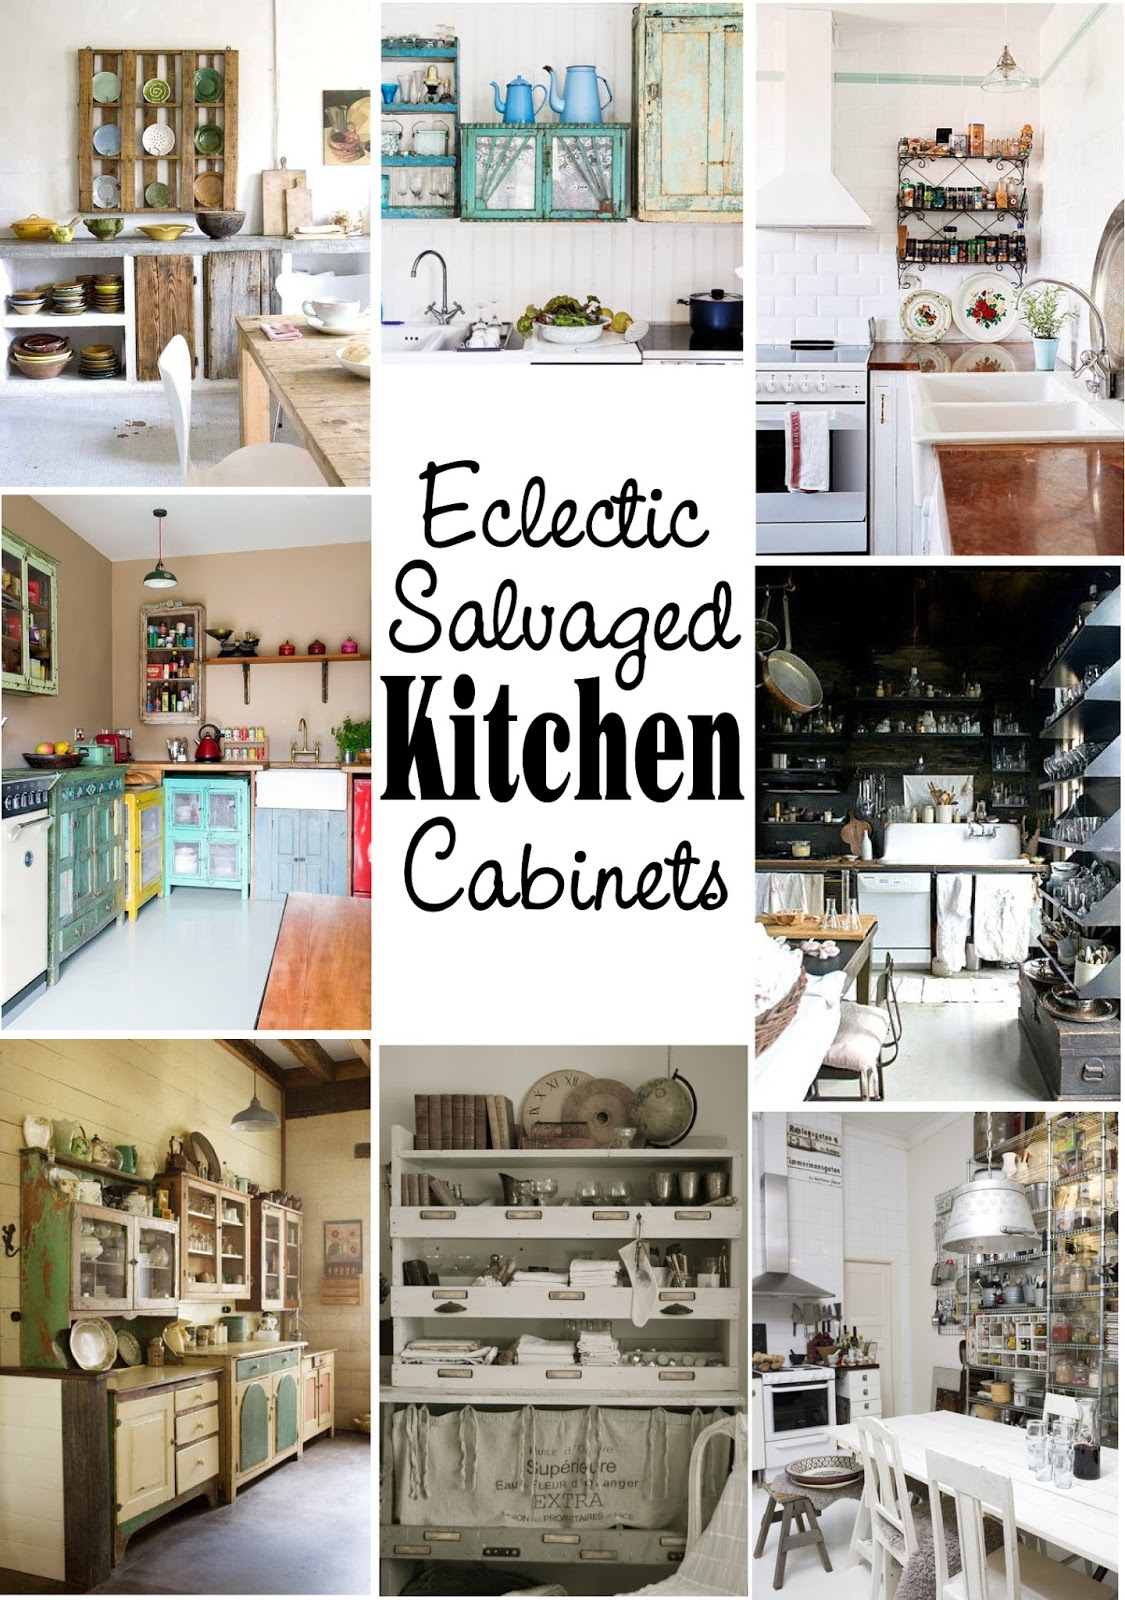 Salvaged Kitchen Cabinets Interior Design